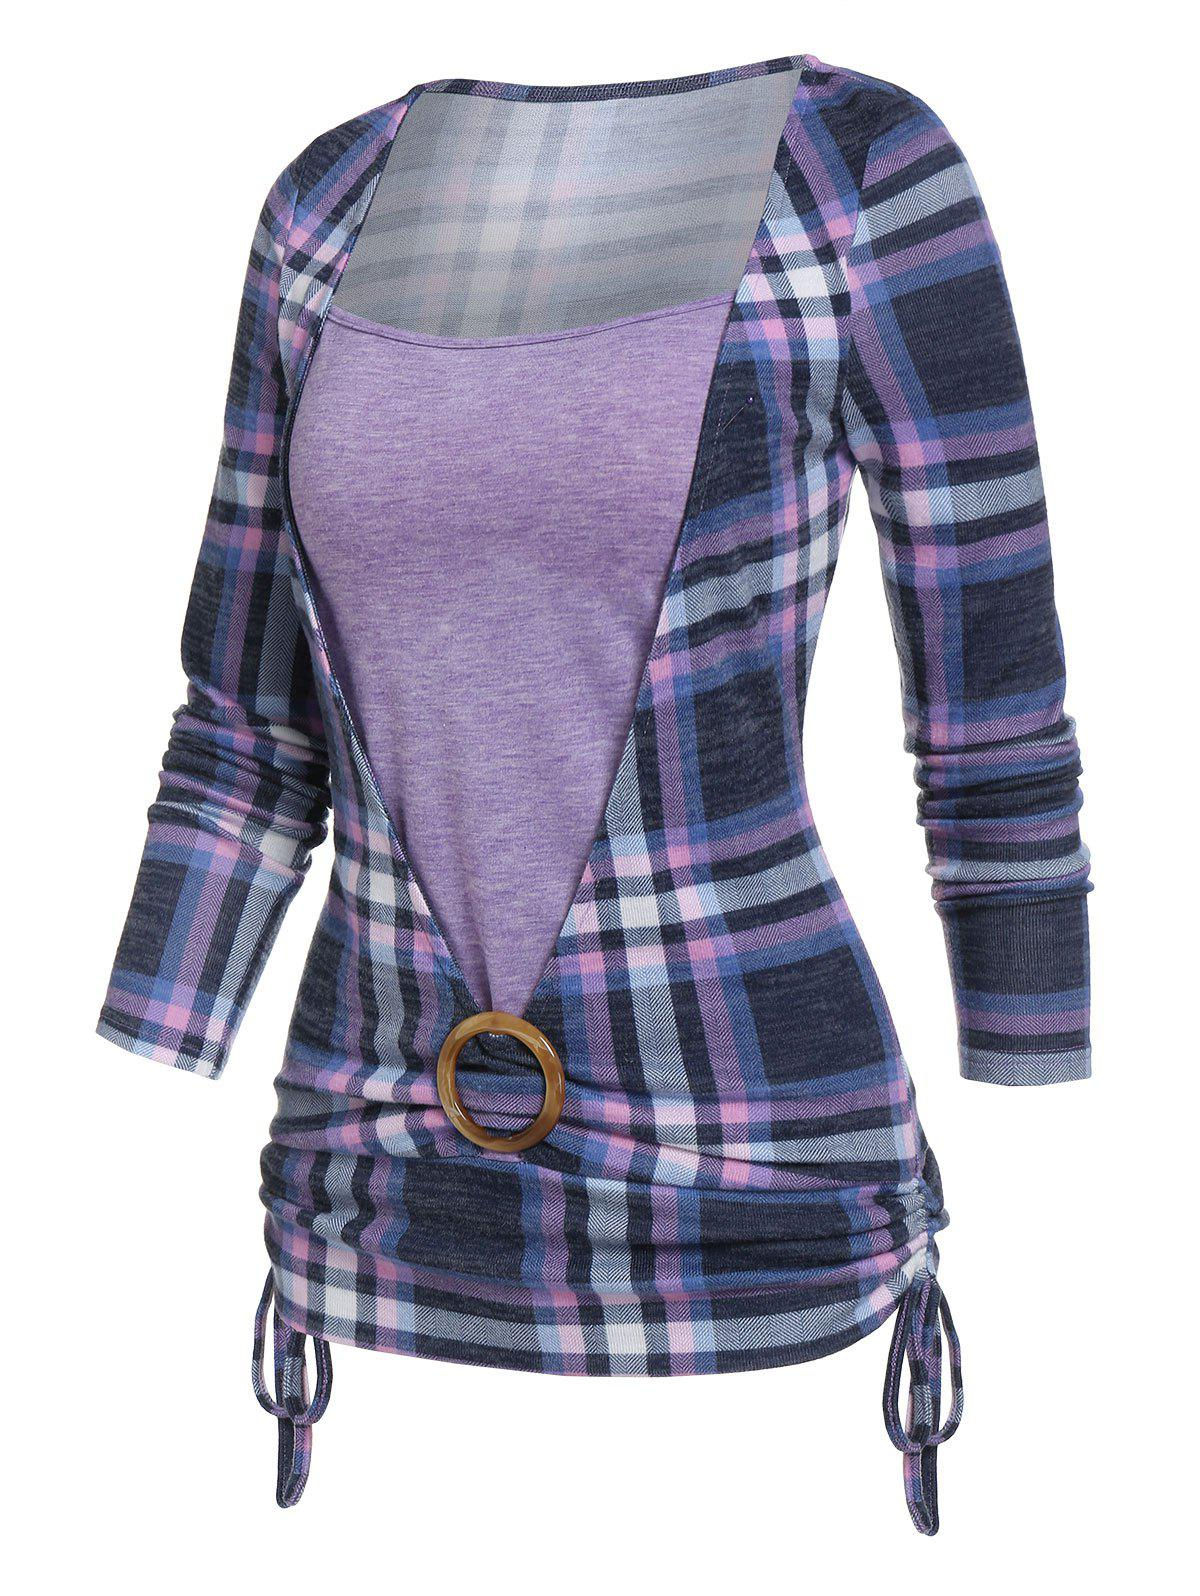 Buy Plaid Print Cinched O-ring Faux Twinset T-shirt